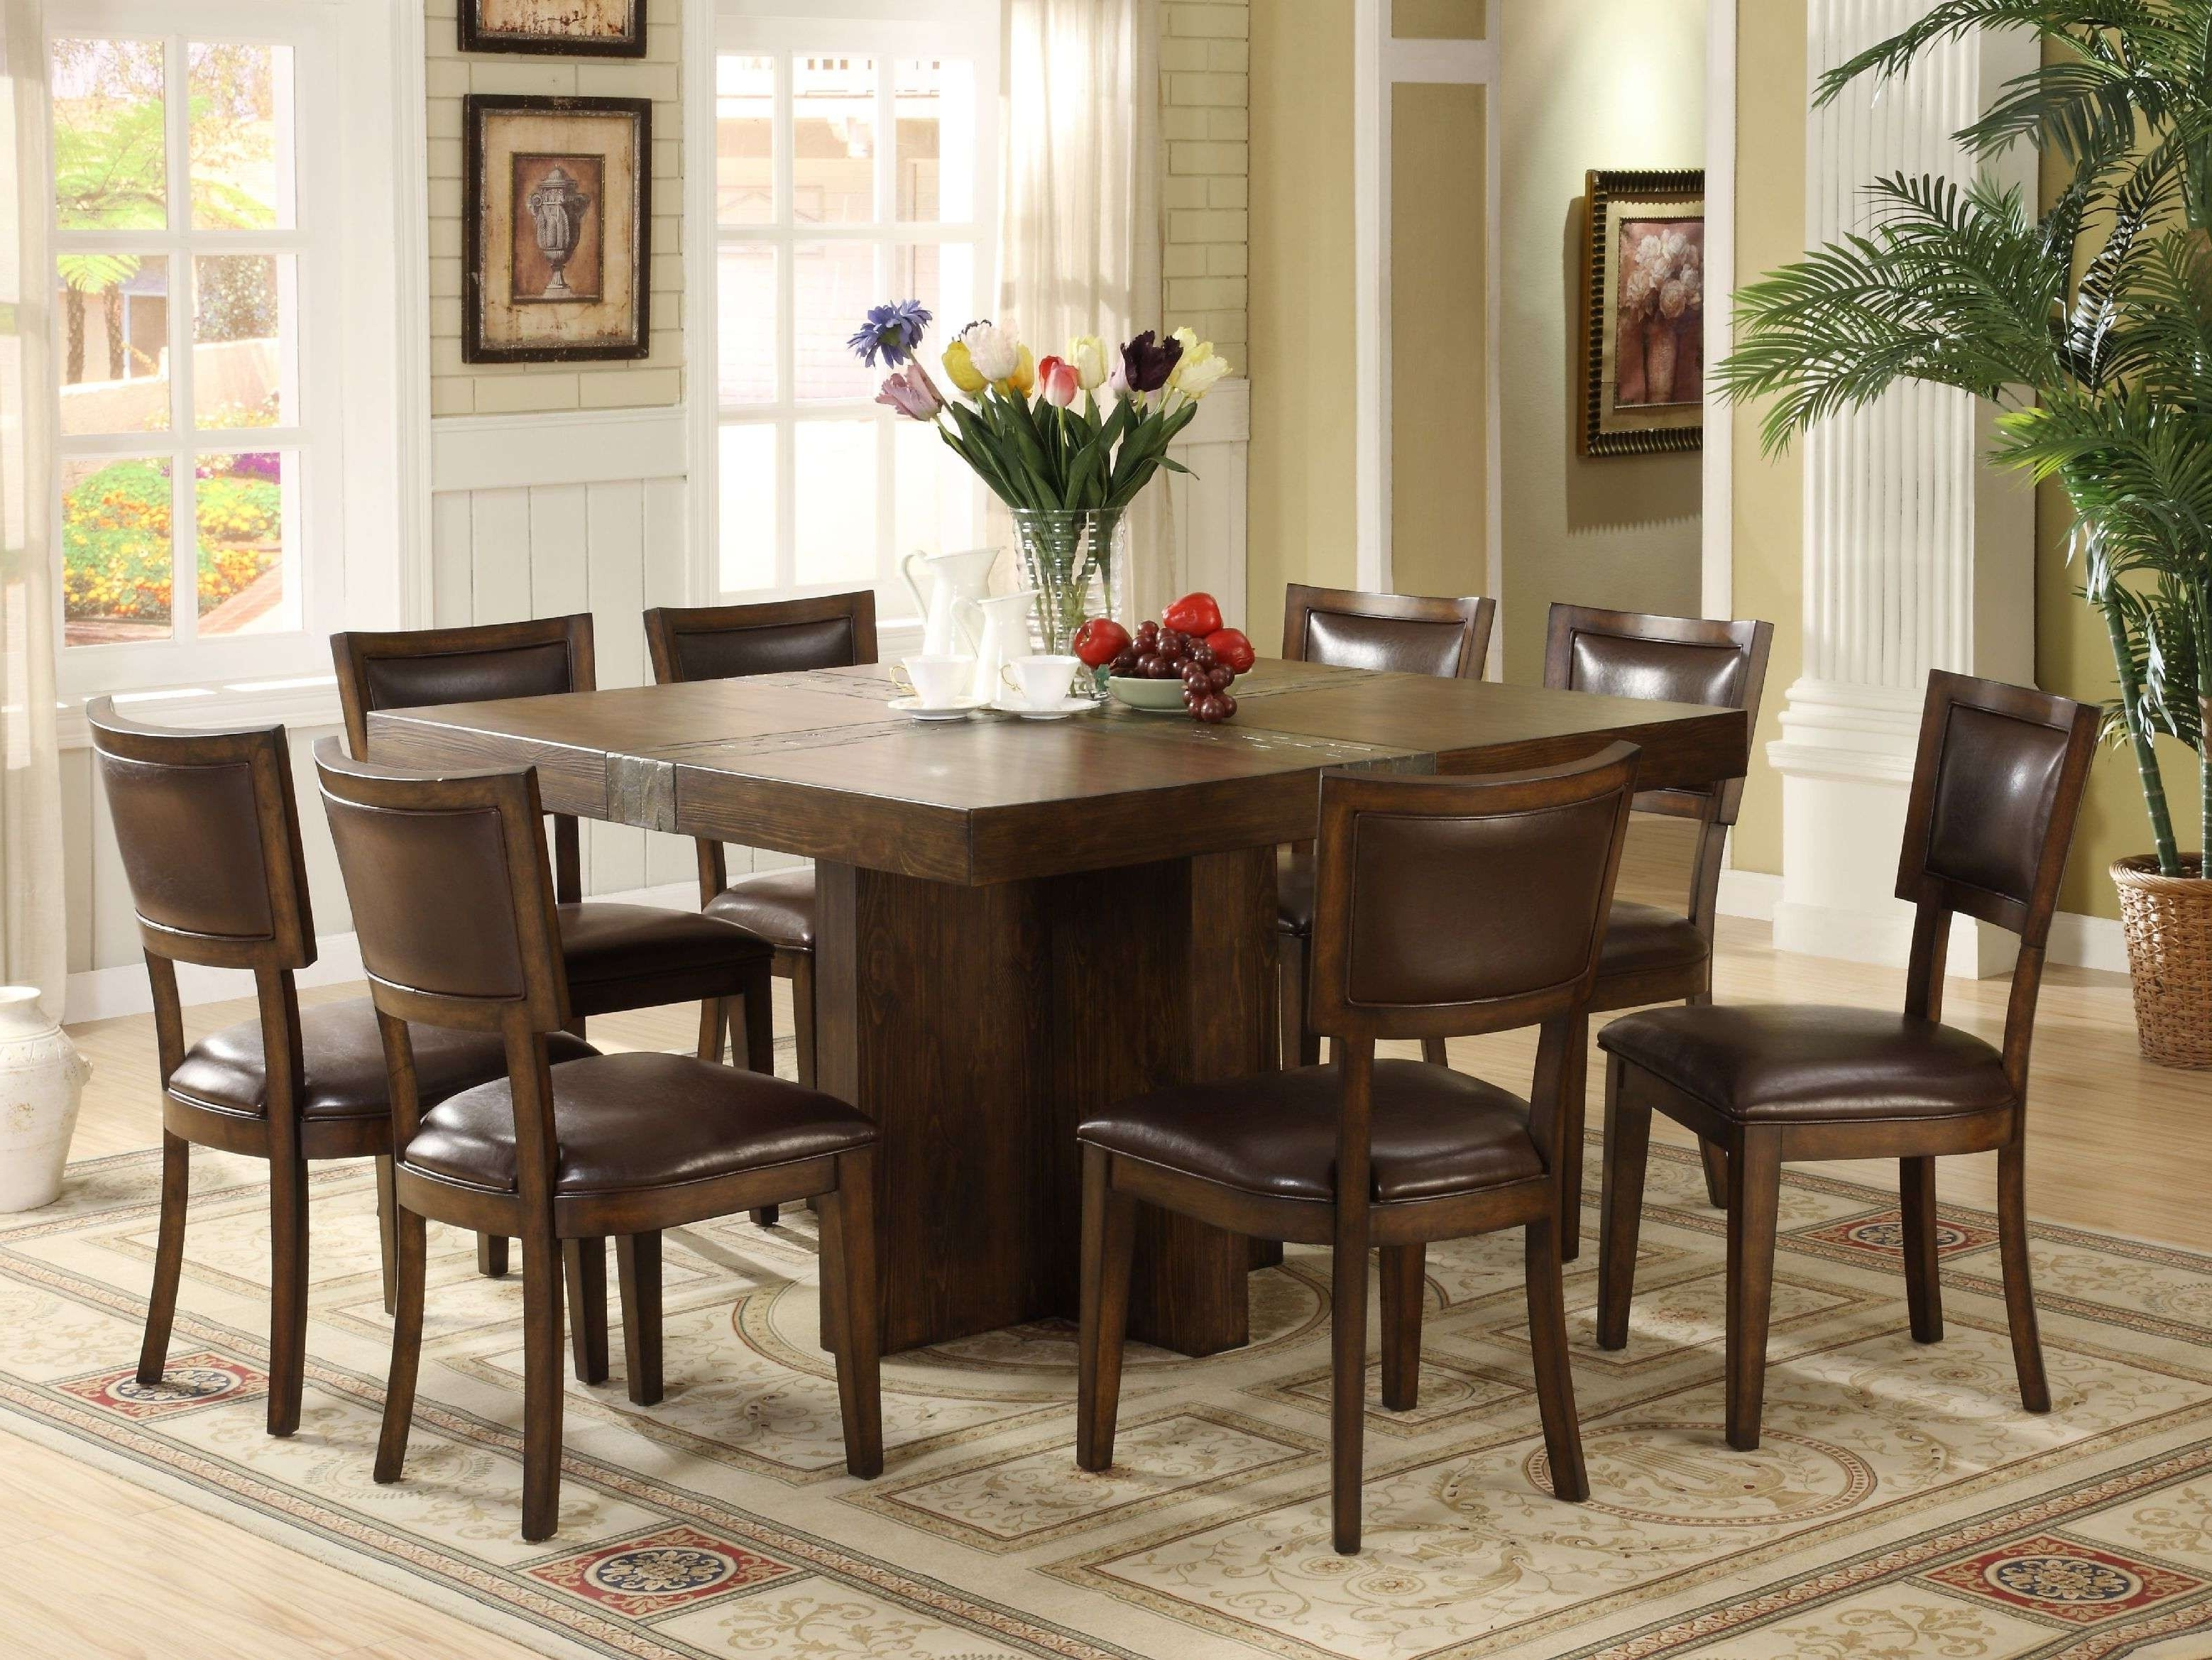 Preferred Dining Tables For 8 Throughout 10 Seater Dining Table And Chairs Beautiful Best 8 Seater Dining (View 23 of 25)